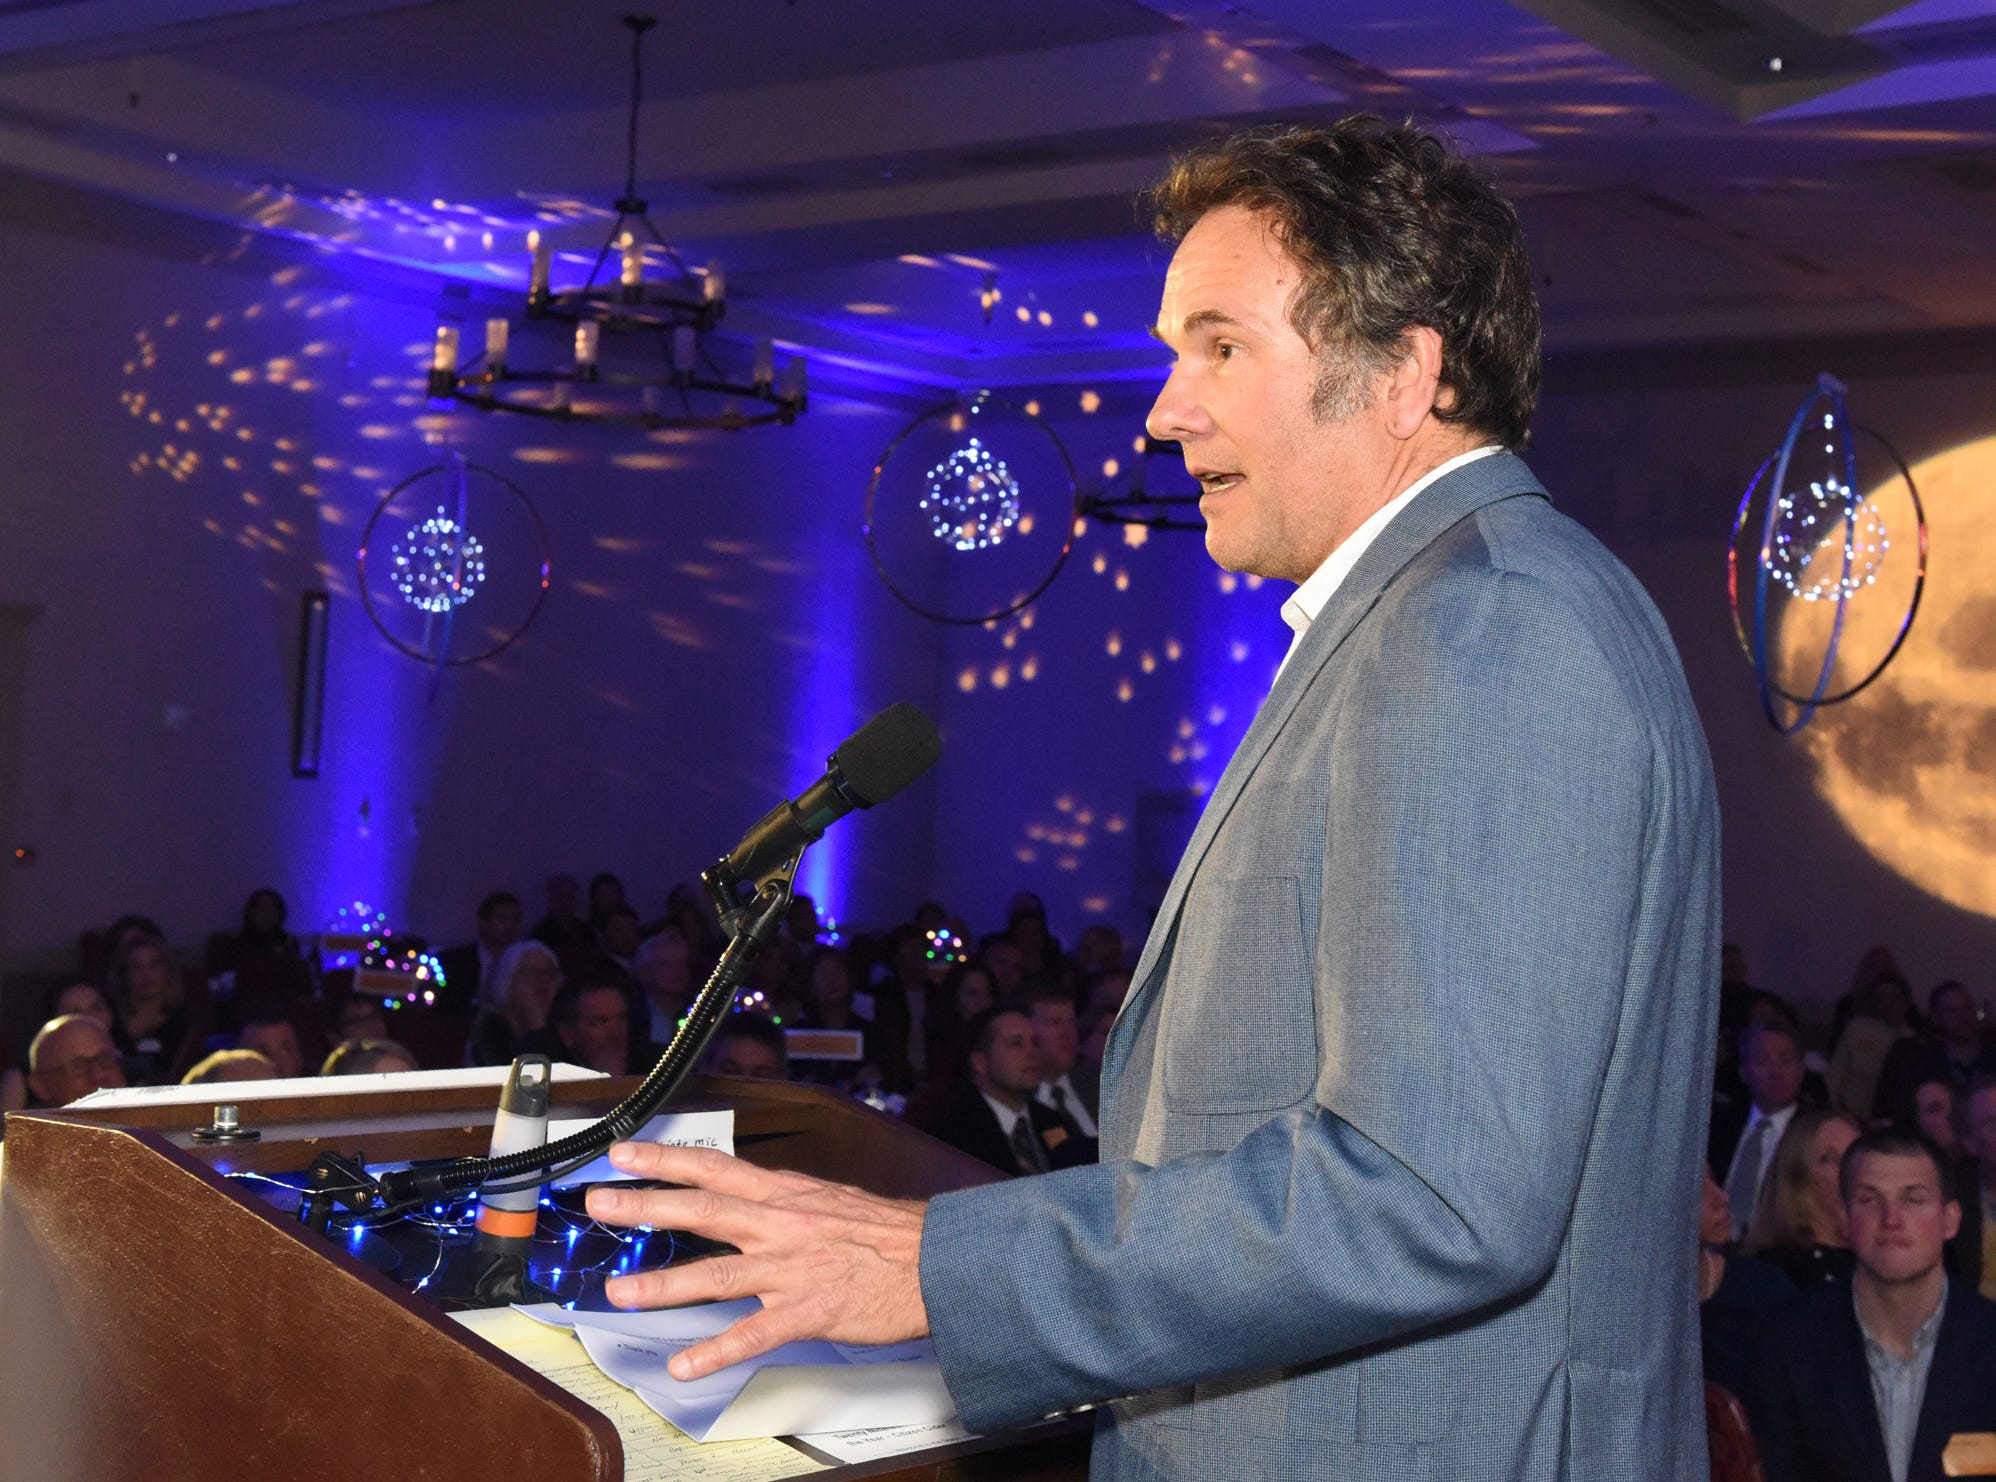 Larry Williams of Redstone VT receives the 11th Annual Tim Halvorson Award for business person of the year at the 41st BBA Burlington Business Association Dinner & Annual Meeting at the Hilton Burlington Lake Champlain in Burlington, VT on Thursday, April 4, 2019.